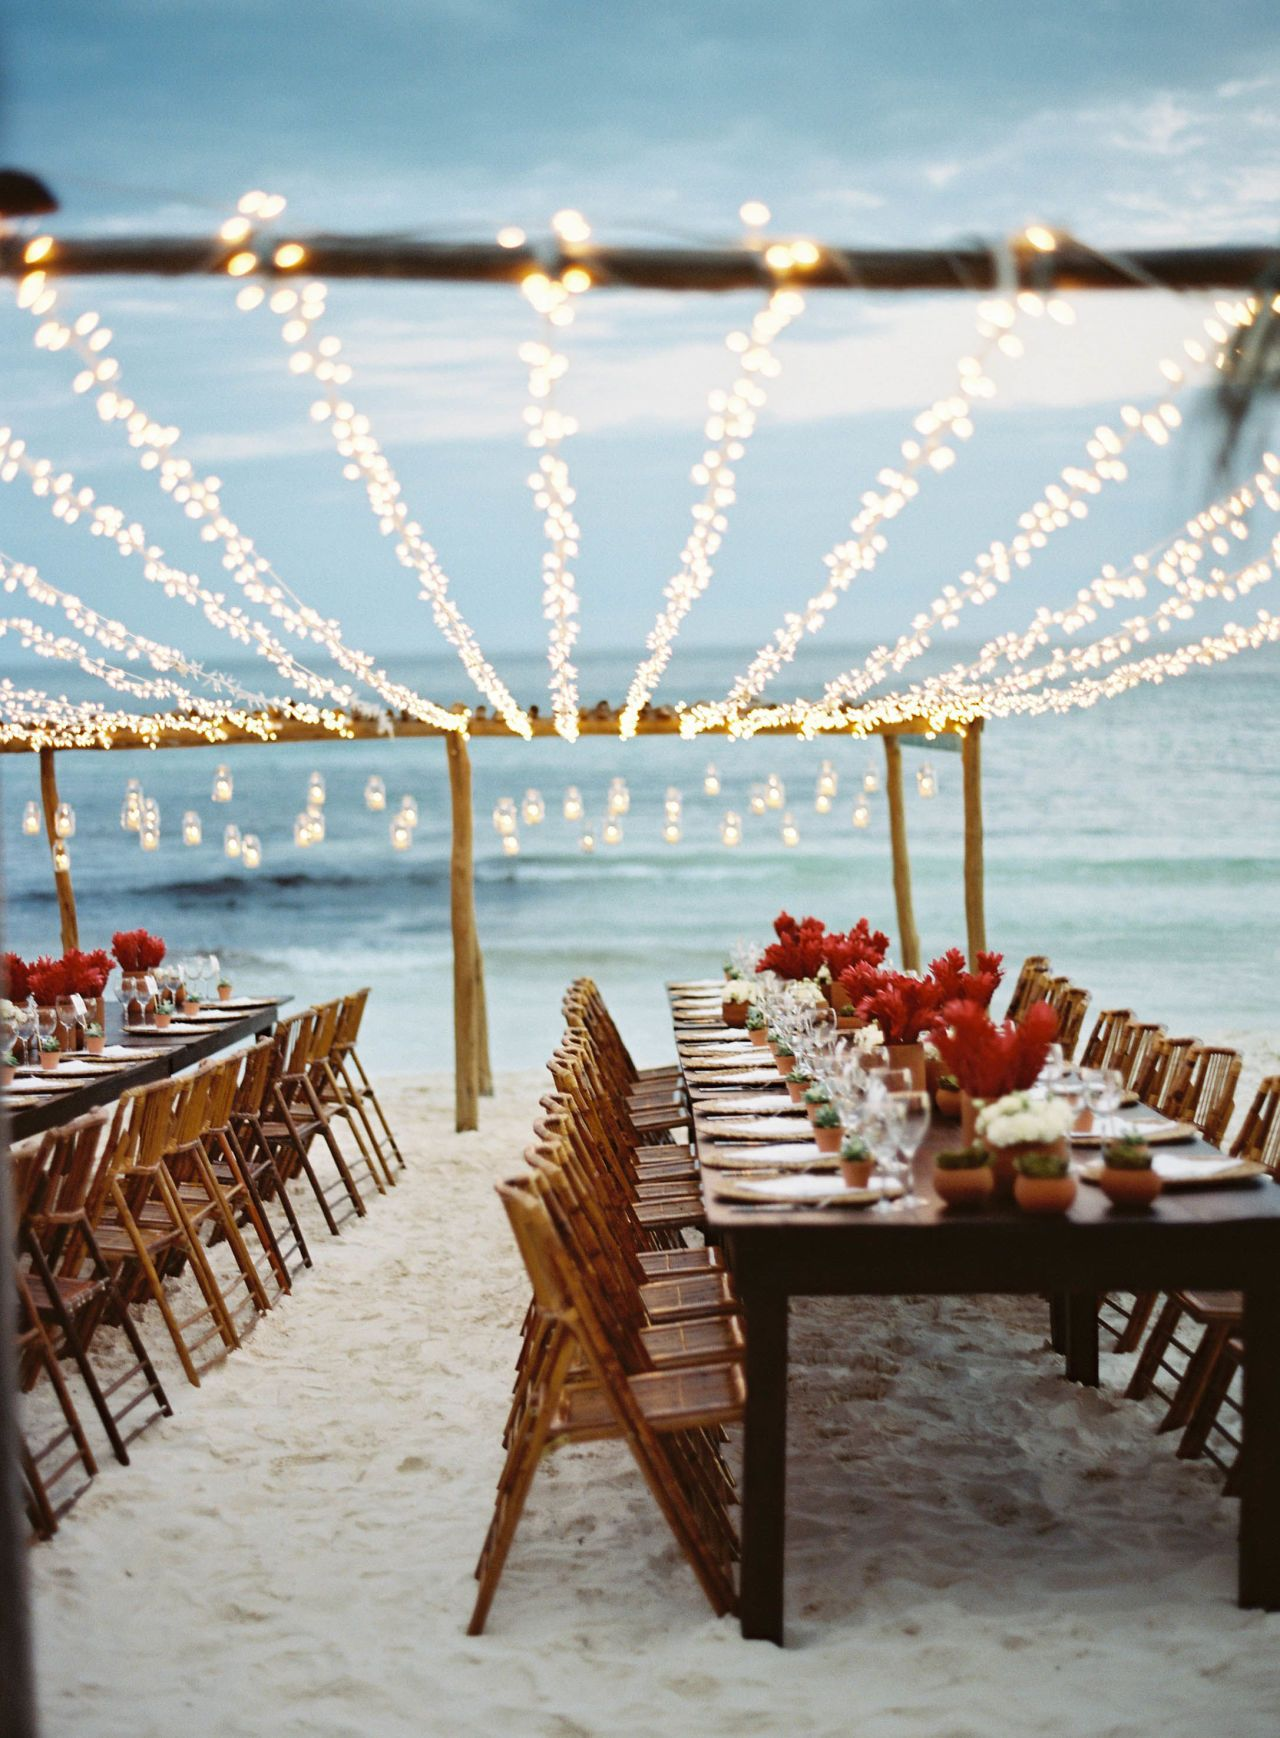 As You May Know Lighting Is One Of The Hottest Wedding Décor Ideas For Receptions And Ceremonies Has Magical To Add A Glamorous